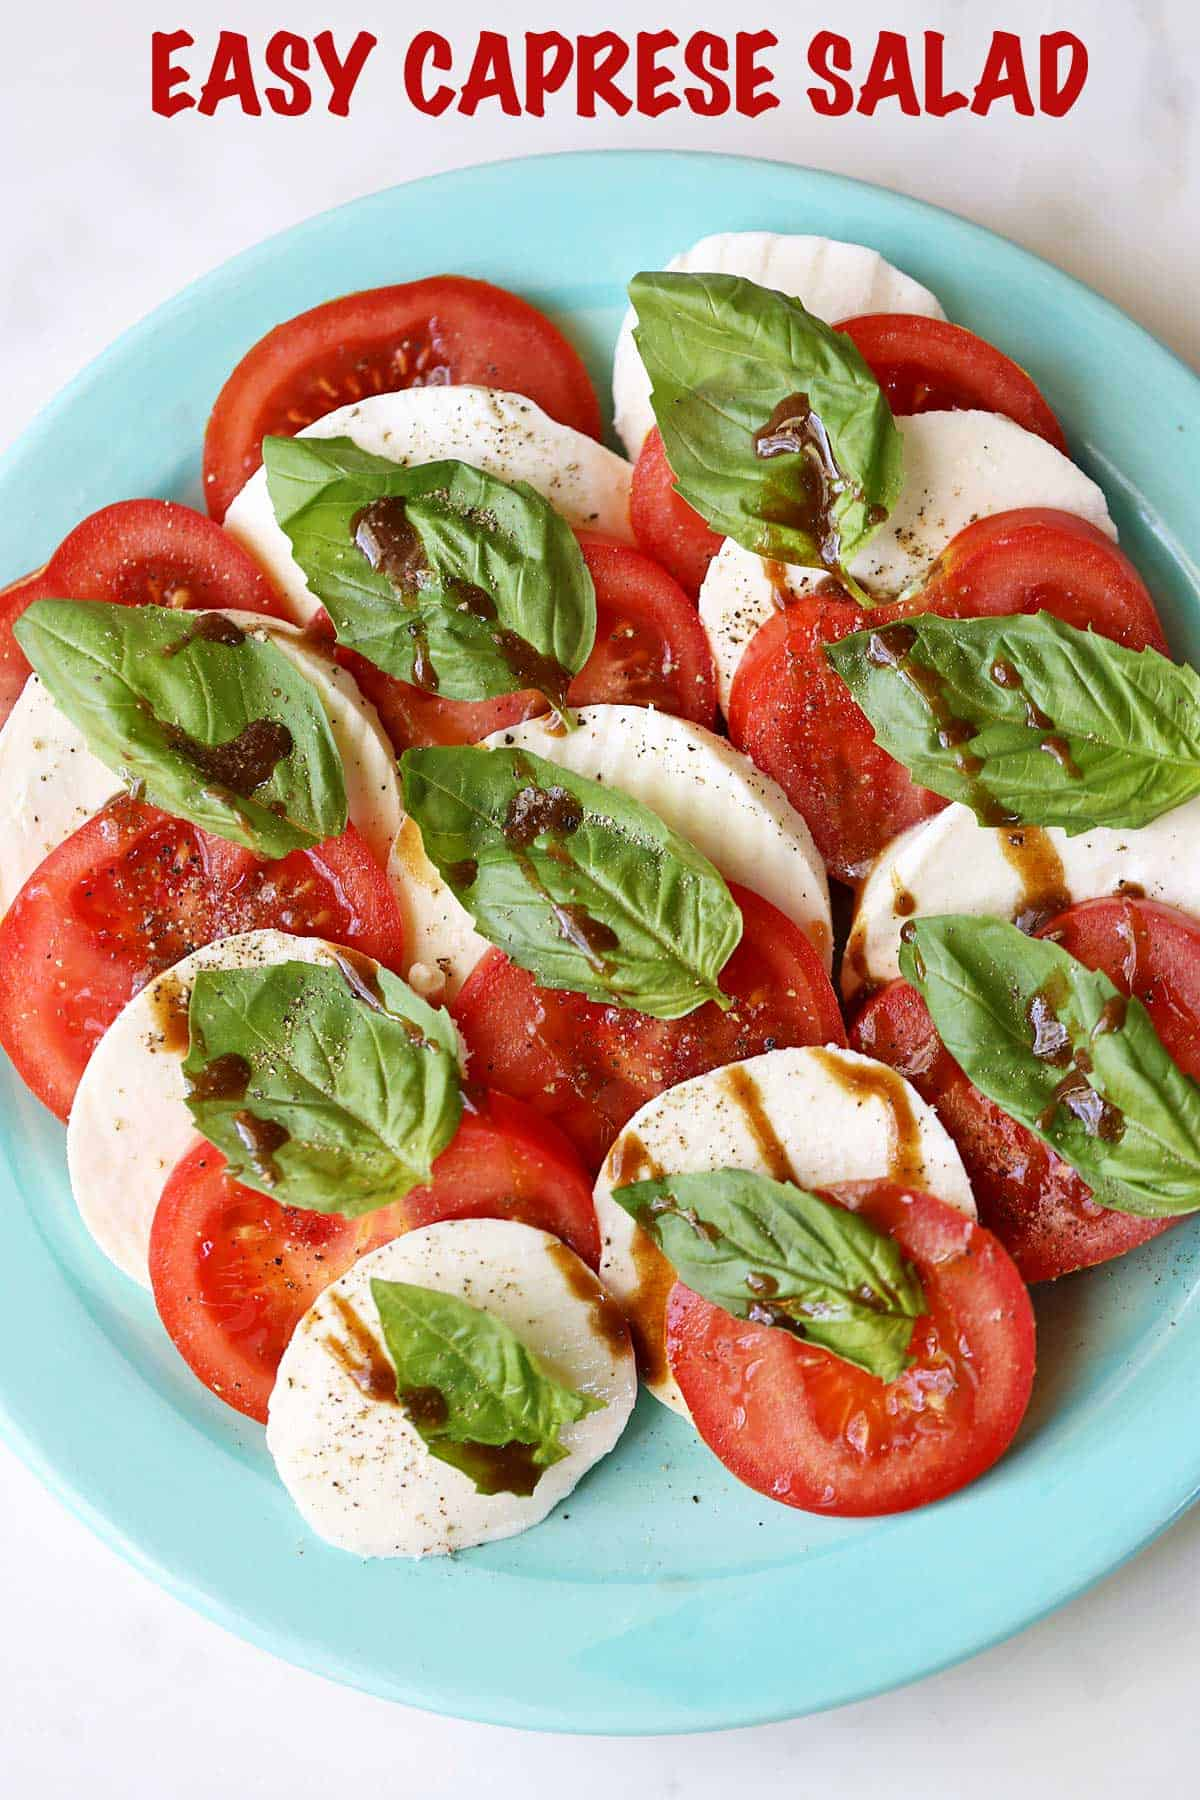 Caprese salad with slices of tomatoes and mozzarella served on a green plate.